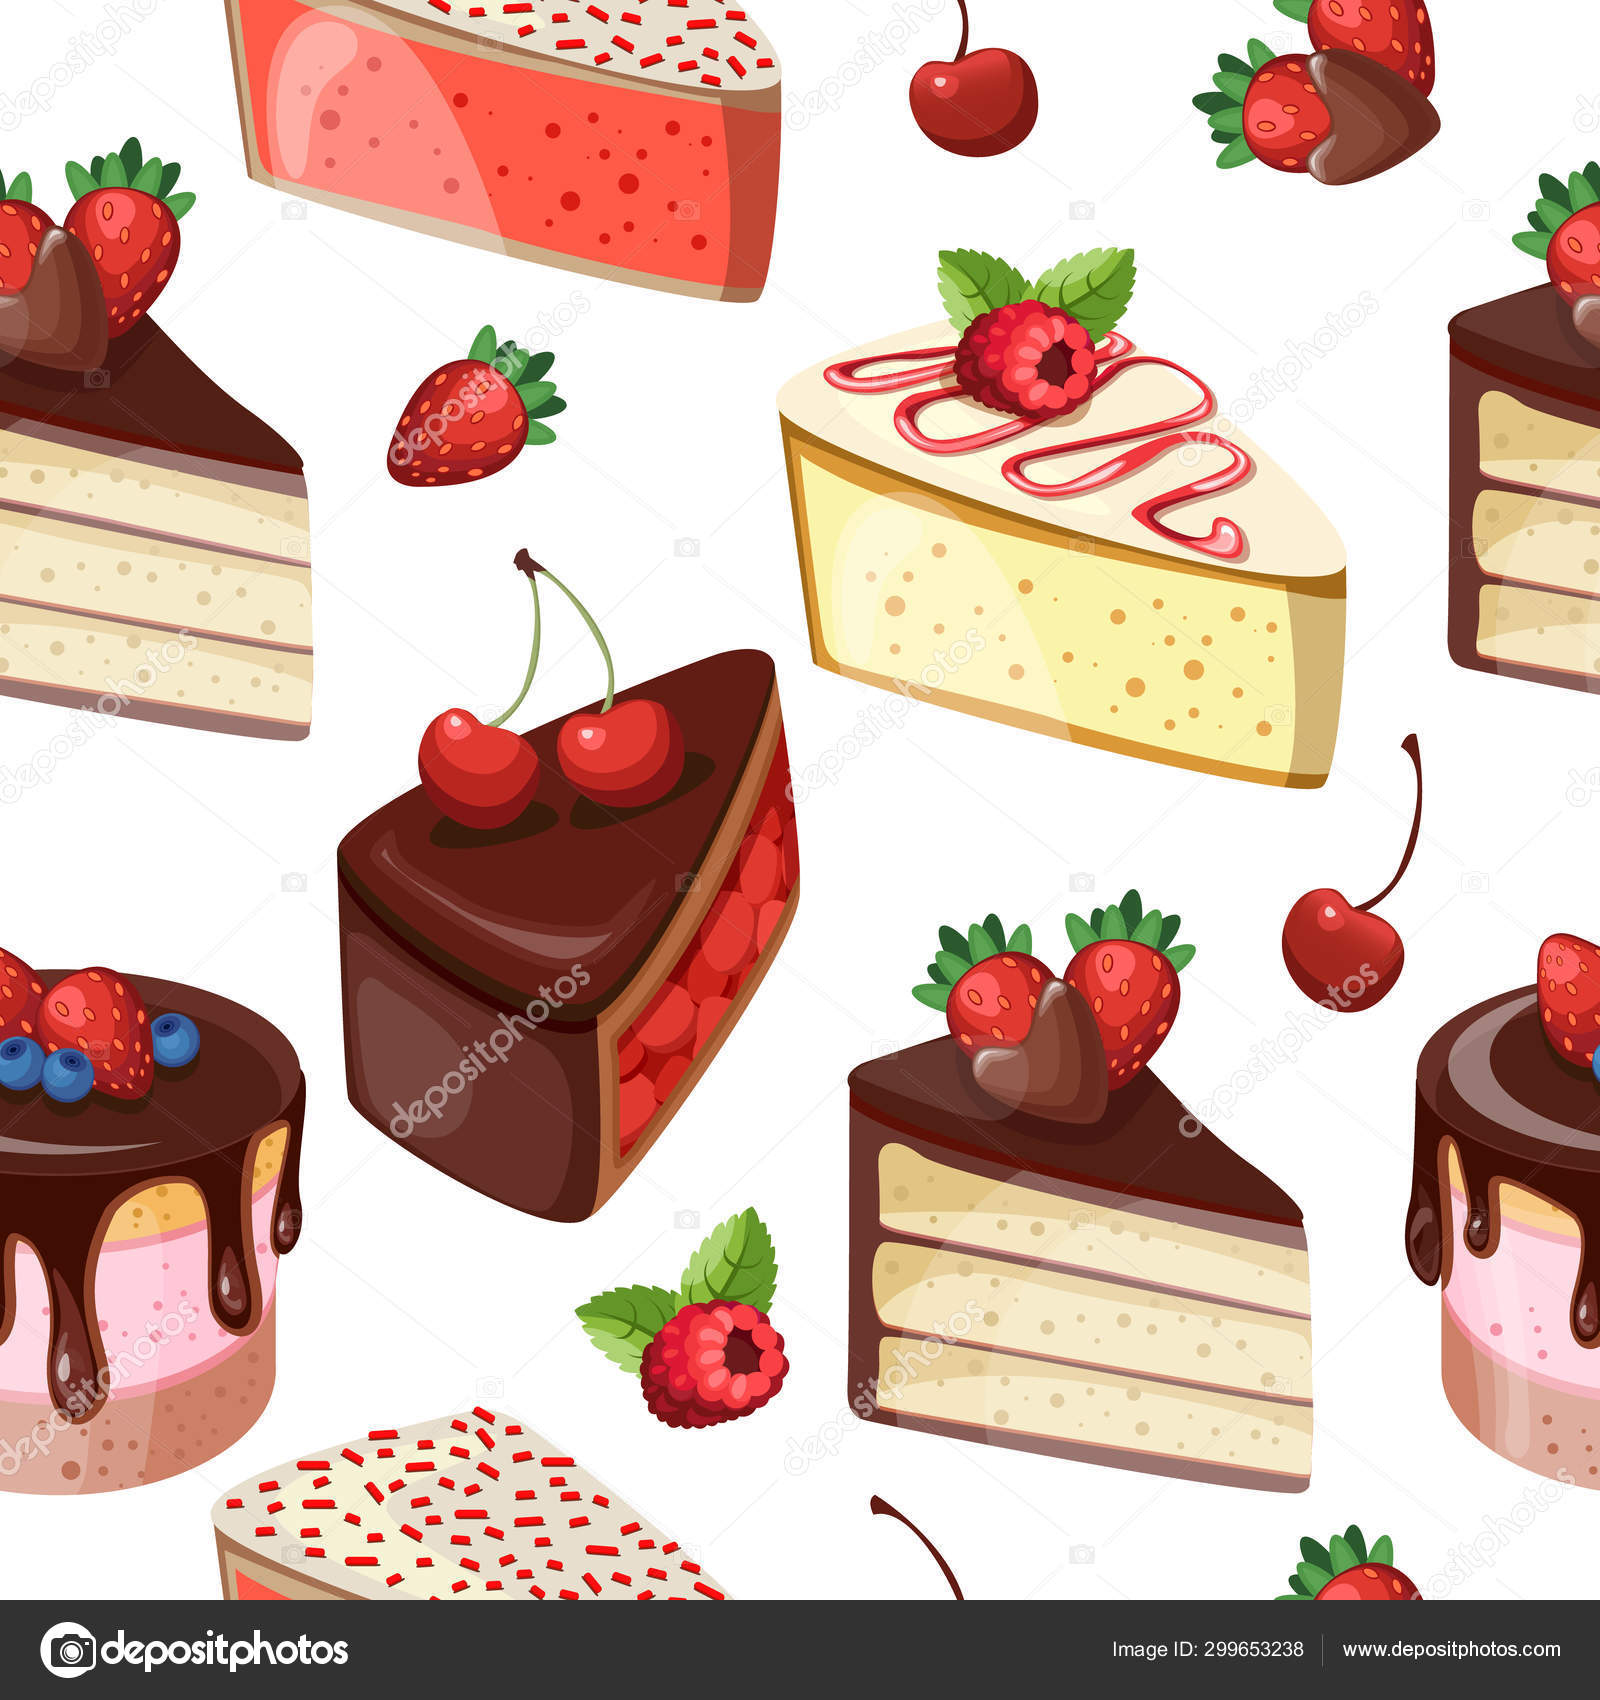 Cakes slices seamless background. Seamless pattern with pies